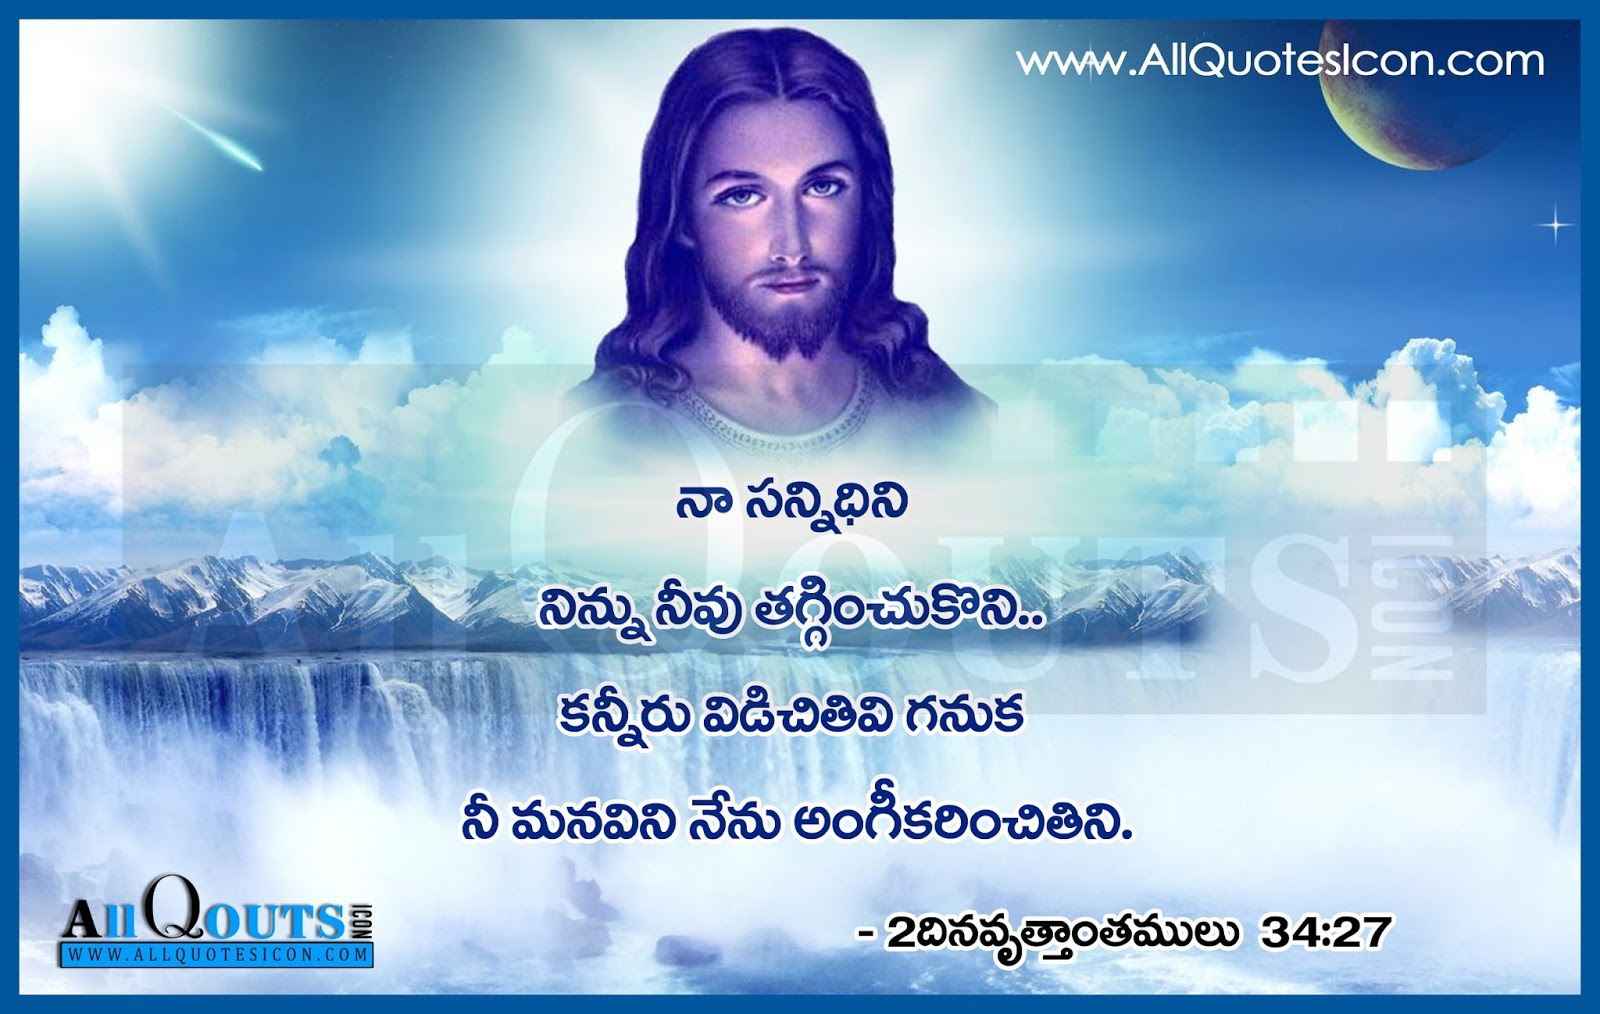 My Lord Given Everything Quotes In Telugu Hd Wallpapers Top Jesus Christ Telugu Quotes Images Www Allquotesicon Com Telugu Quotes Tamil Quotes Hindi Quotes English Quotes